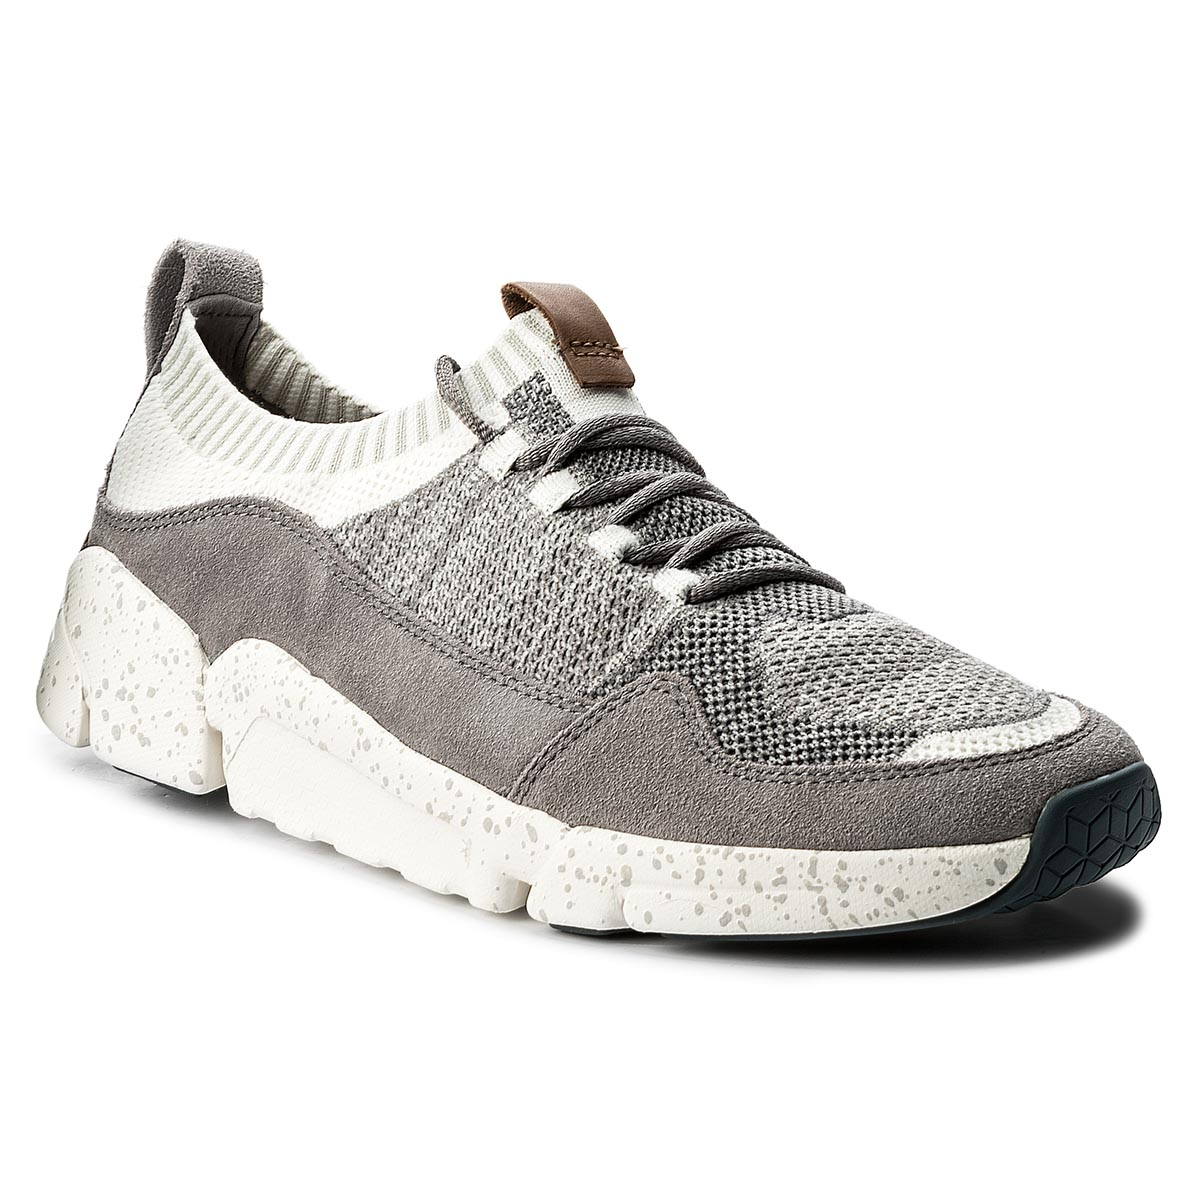 Sneakers CLARKS - Triactive Knit 261338897 Grey